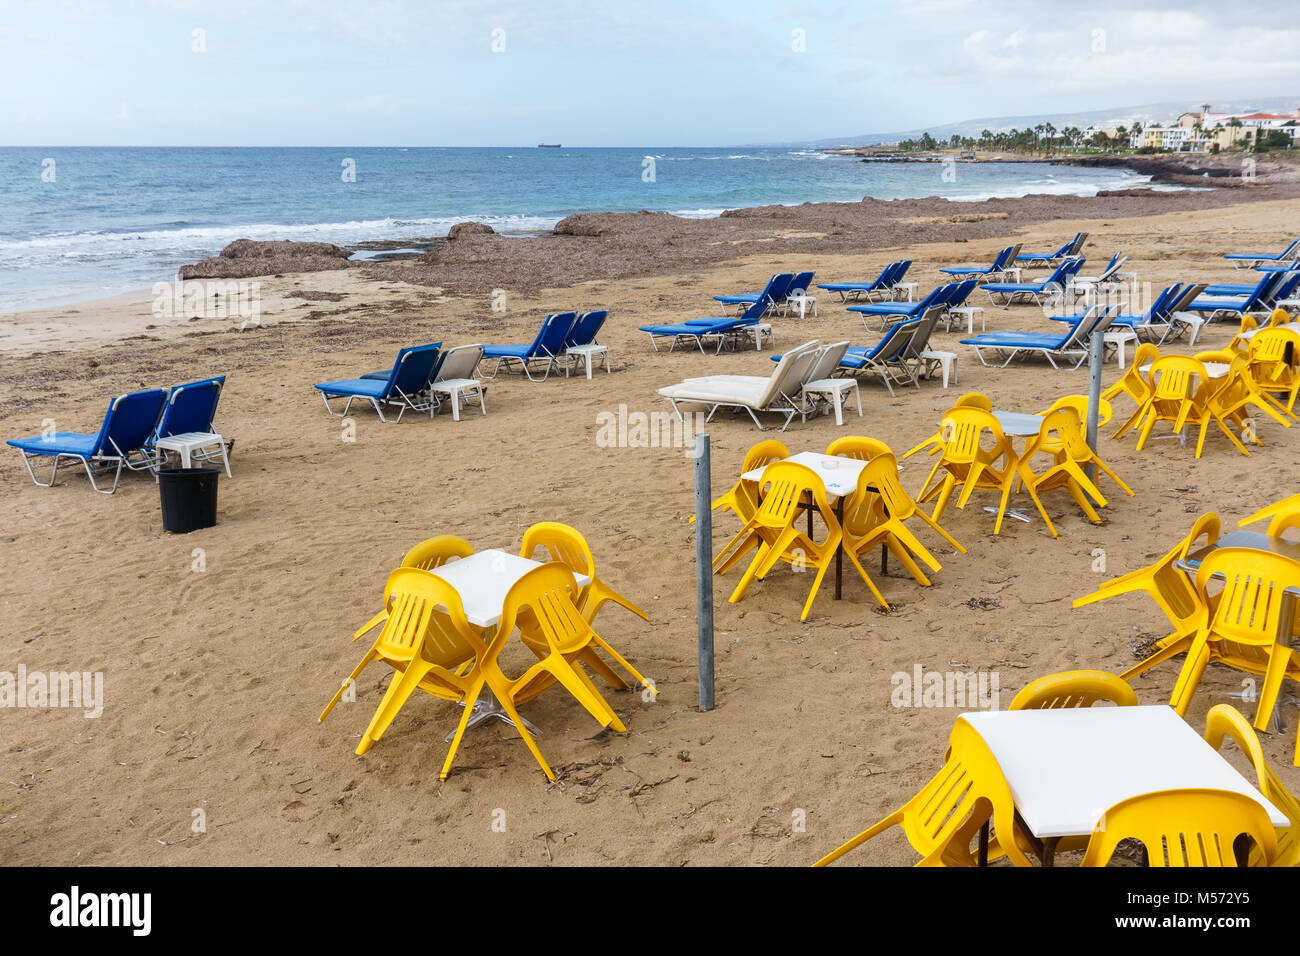 Photos of coastal zone with sun loungers and tables - Stock Image